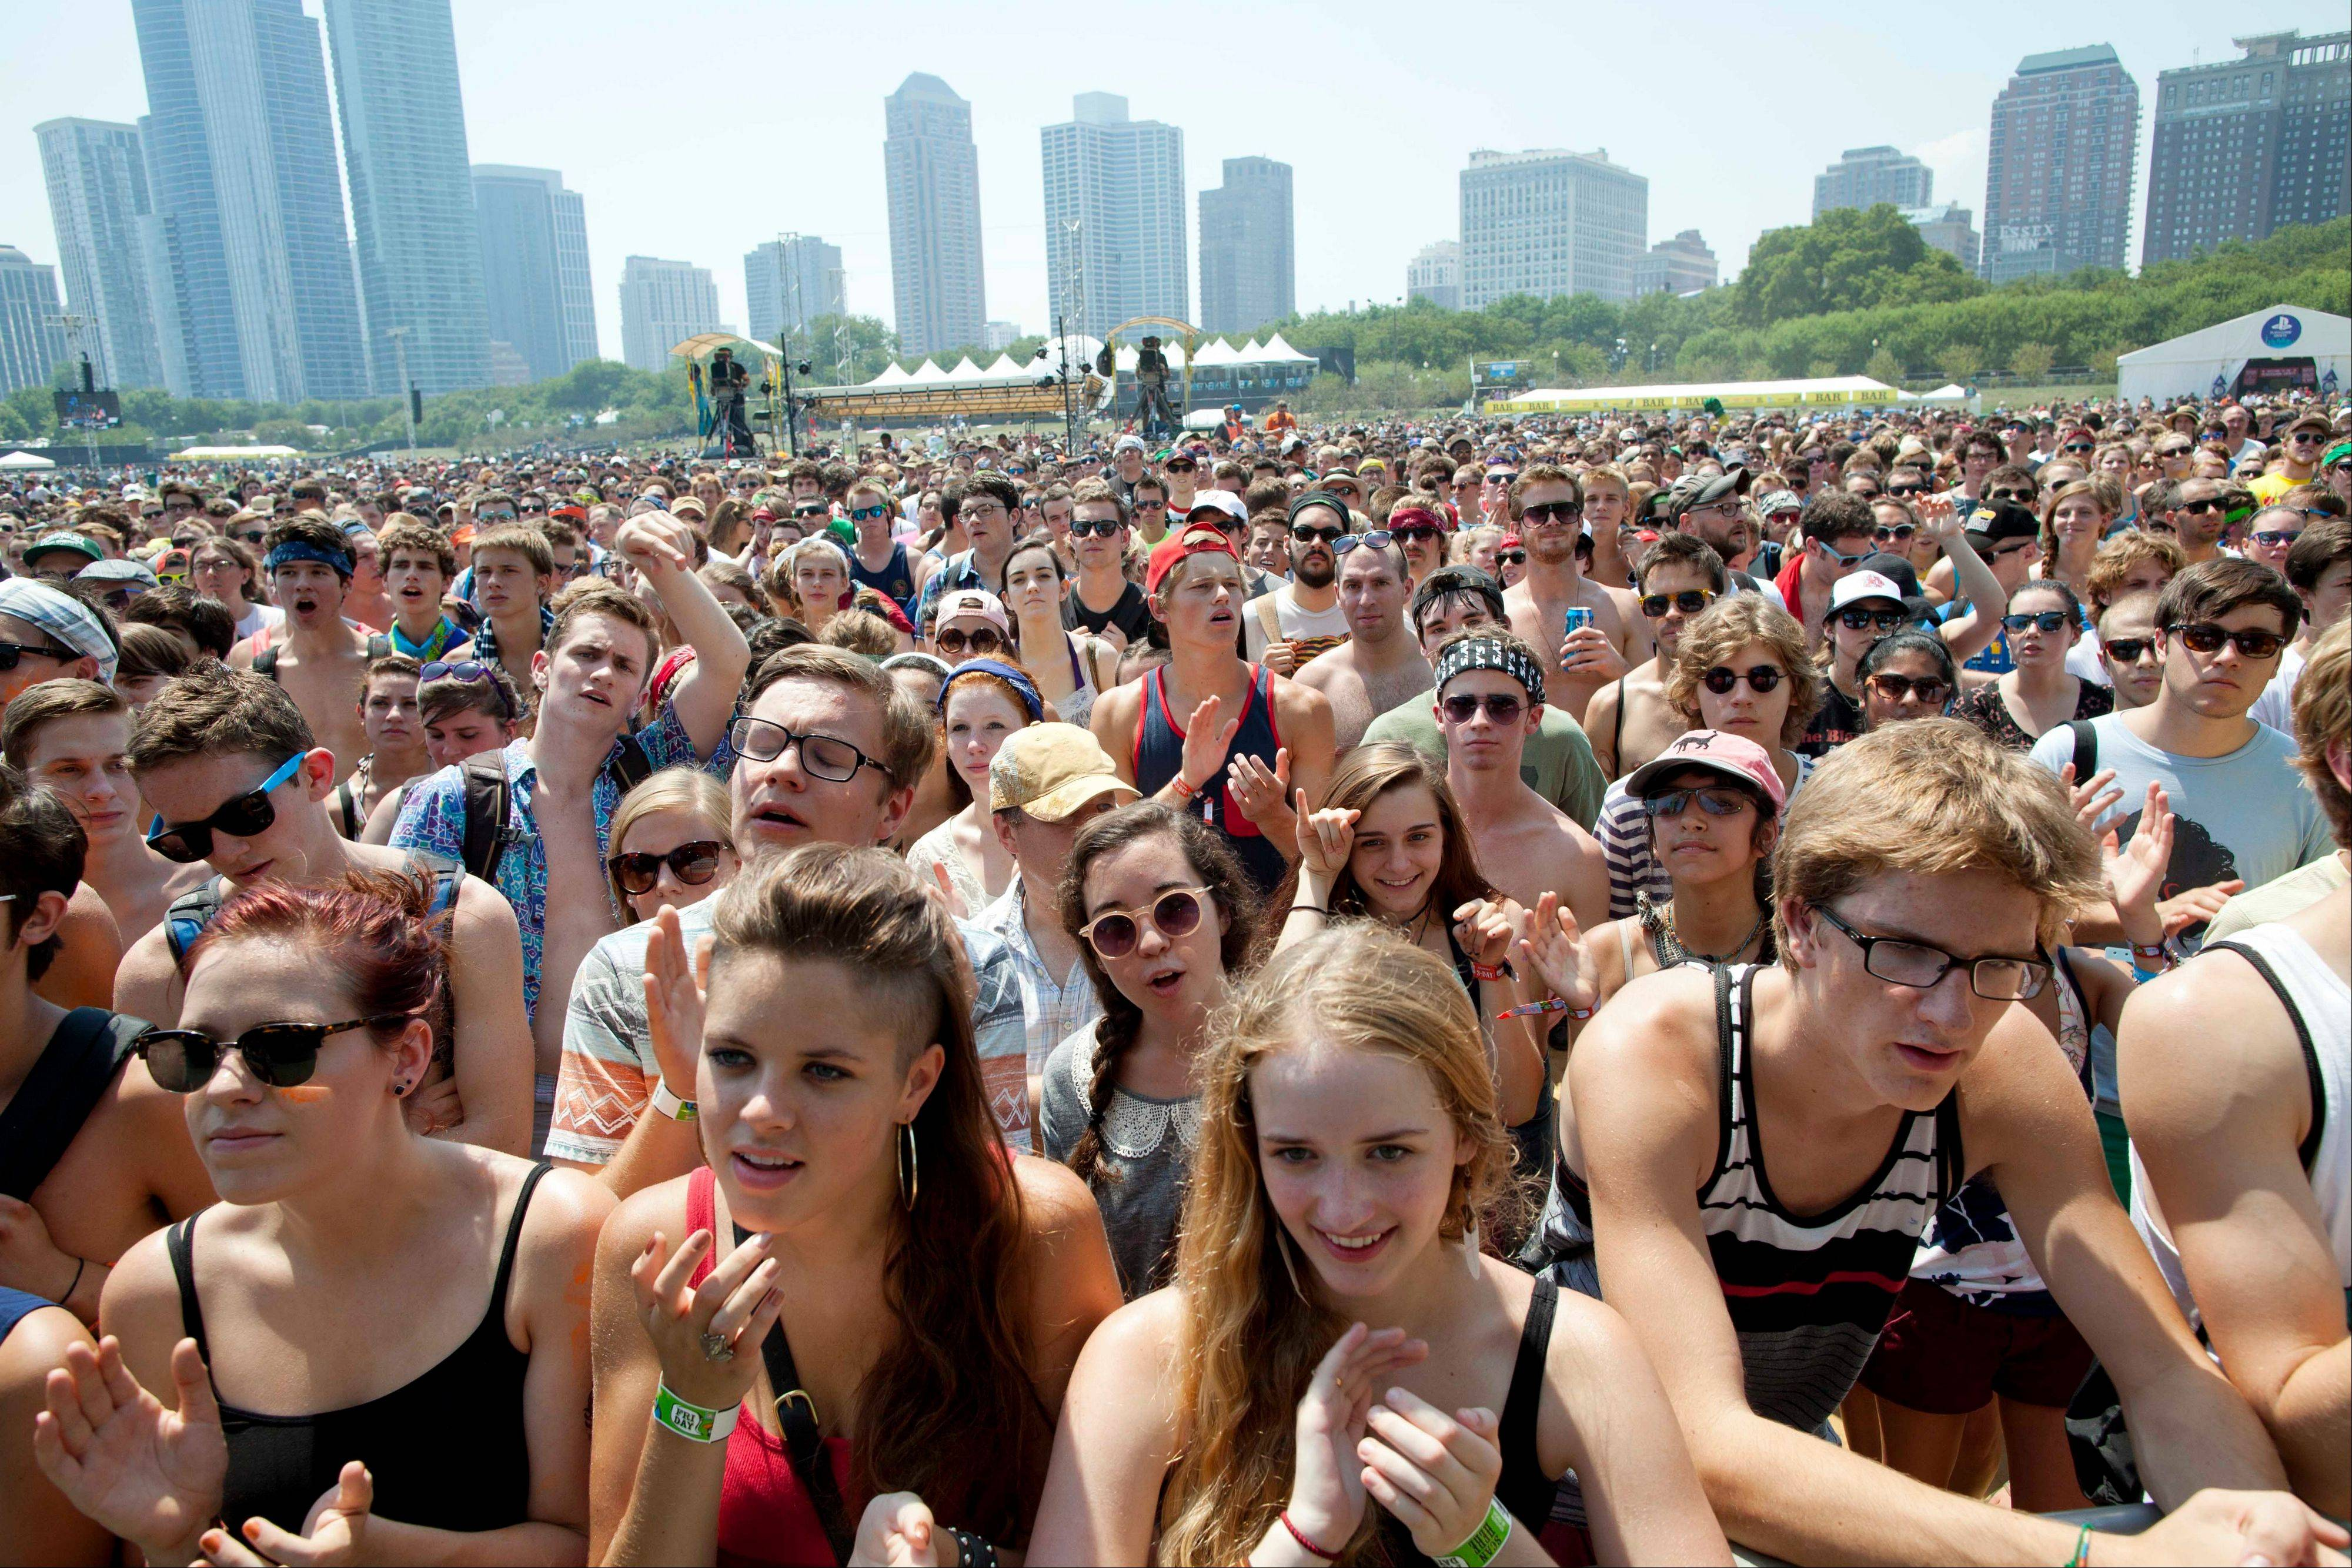 Fans gather for a performance by Yellow Ostrich XX at Lollapalooza in Chicago's Grant Park on Friday, Aug. 3, 2012.